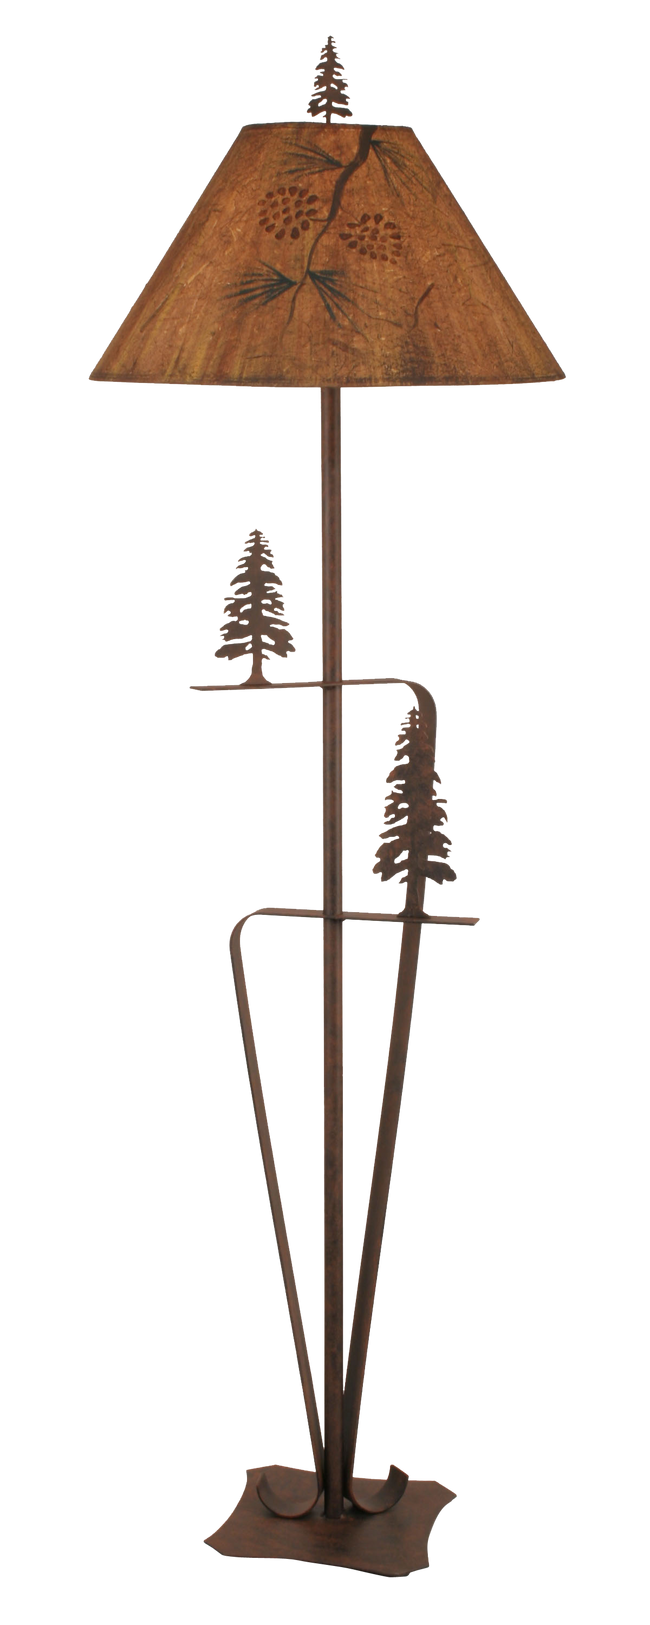 Rust 2 Trees Floor Lamp w/ Pine Branch Shade - Coast Lamp Shop